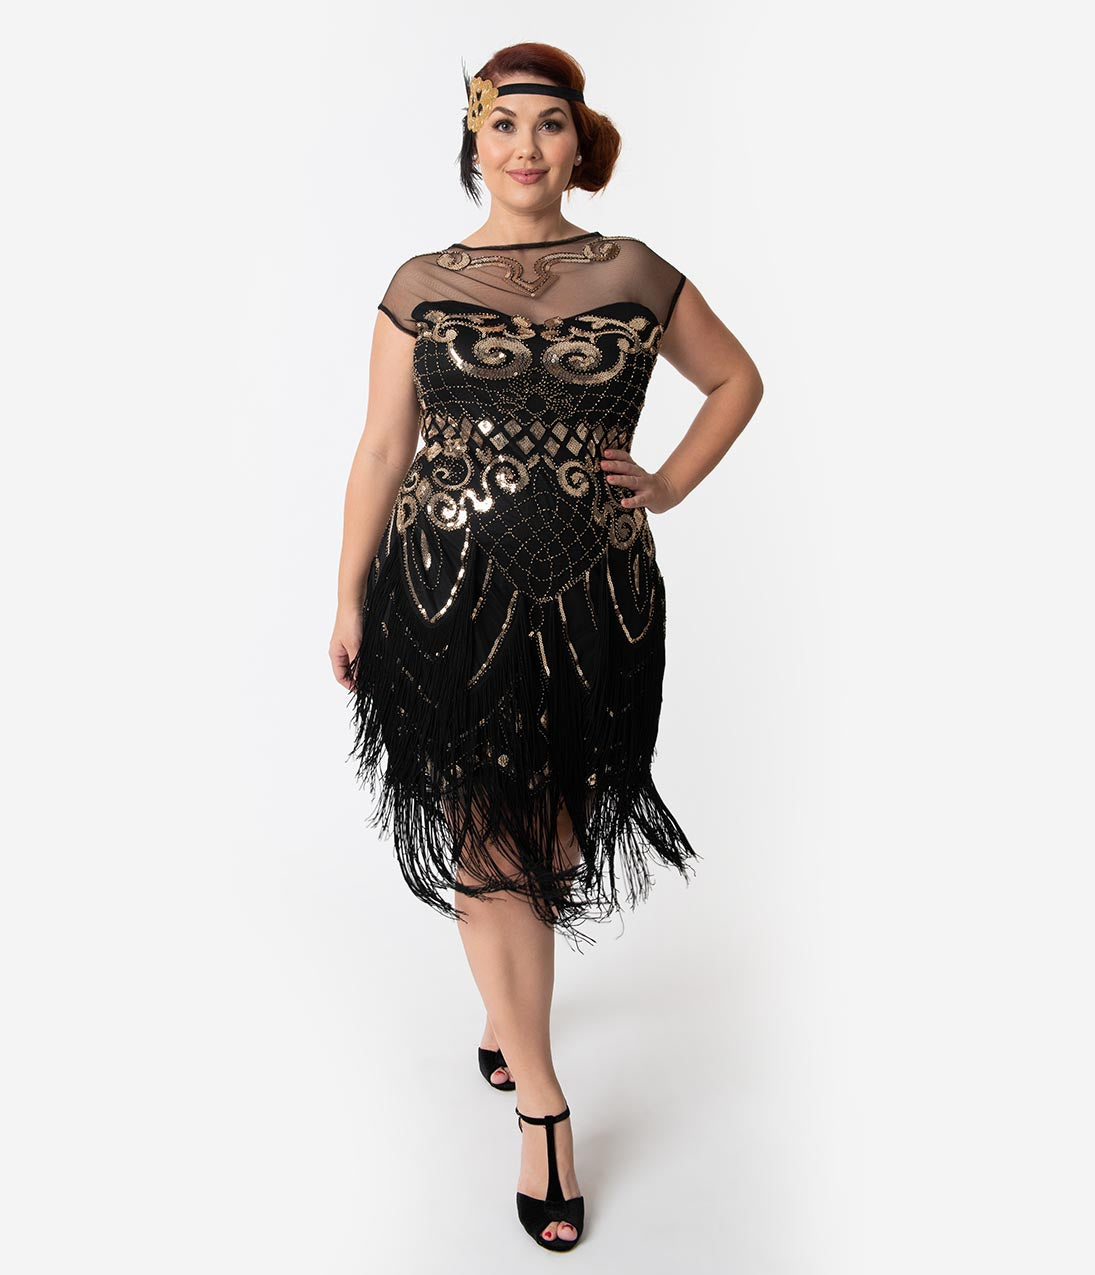 6bb4a685c4 Unique Vintage Plus Size 1920s Black & Gold Sequin Fringe Zulla Flapper  Dress